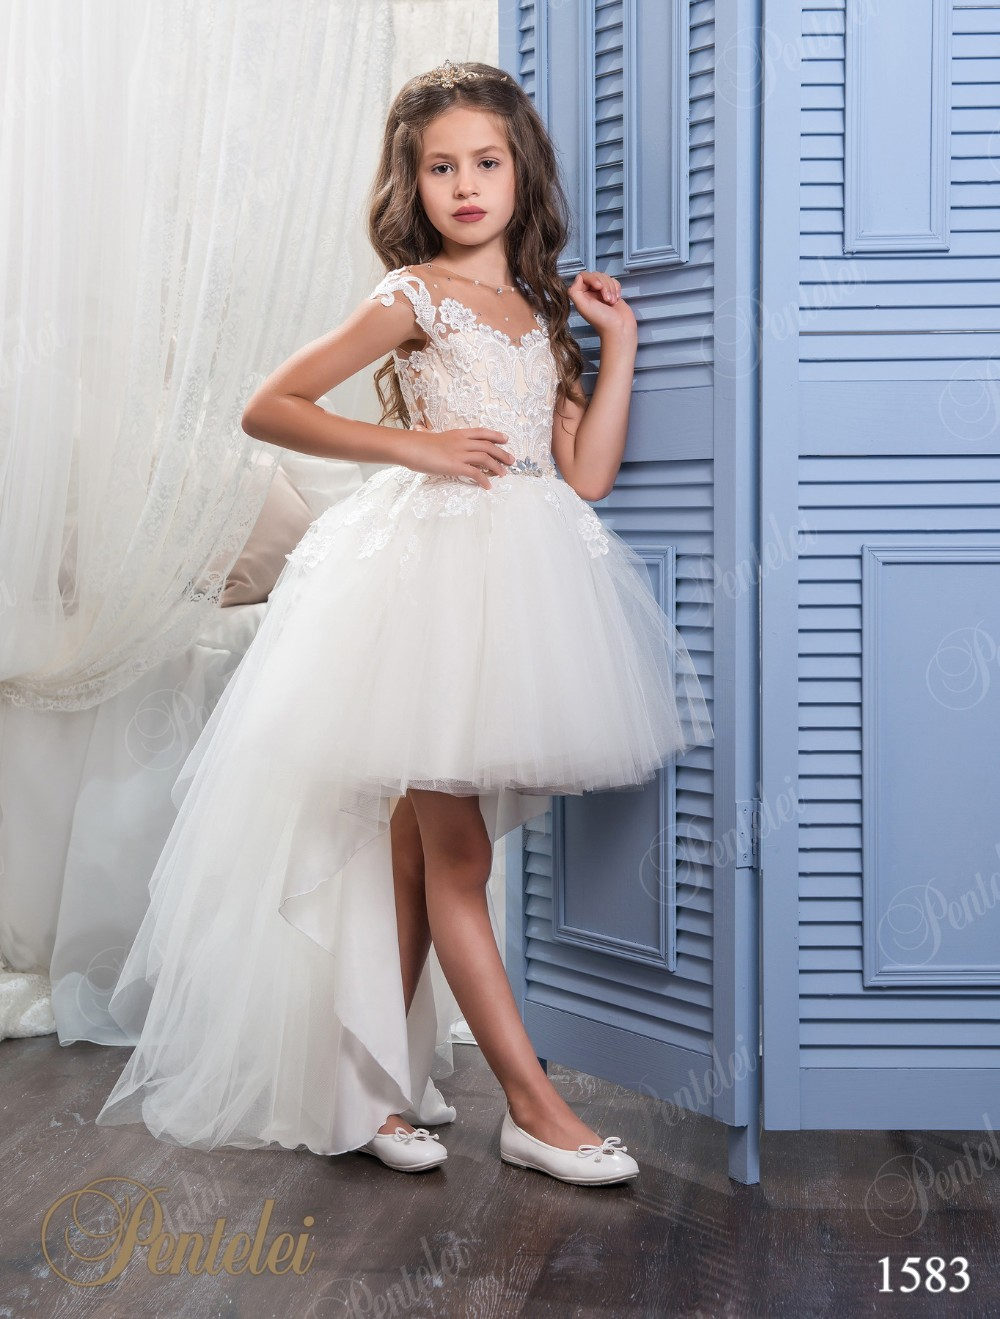 Cute Cap Sleeves Ball Gowns Hi-Lo Flower Girl Dresses 2017 First Communion Dresses for Kids Tulle Prom Party Christmas Eve Gowns new white and blue lace flower girl dresses birthday party pageant prom glitz frocks first communion ball gowns for juniors